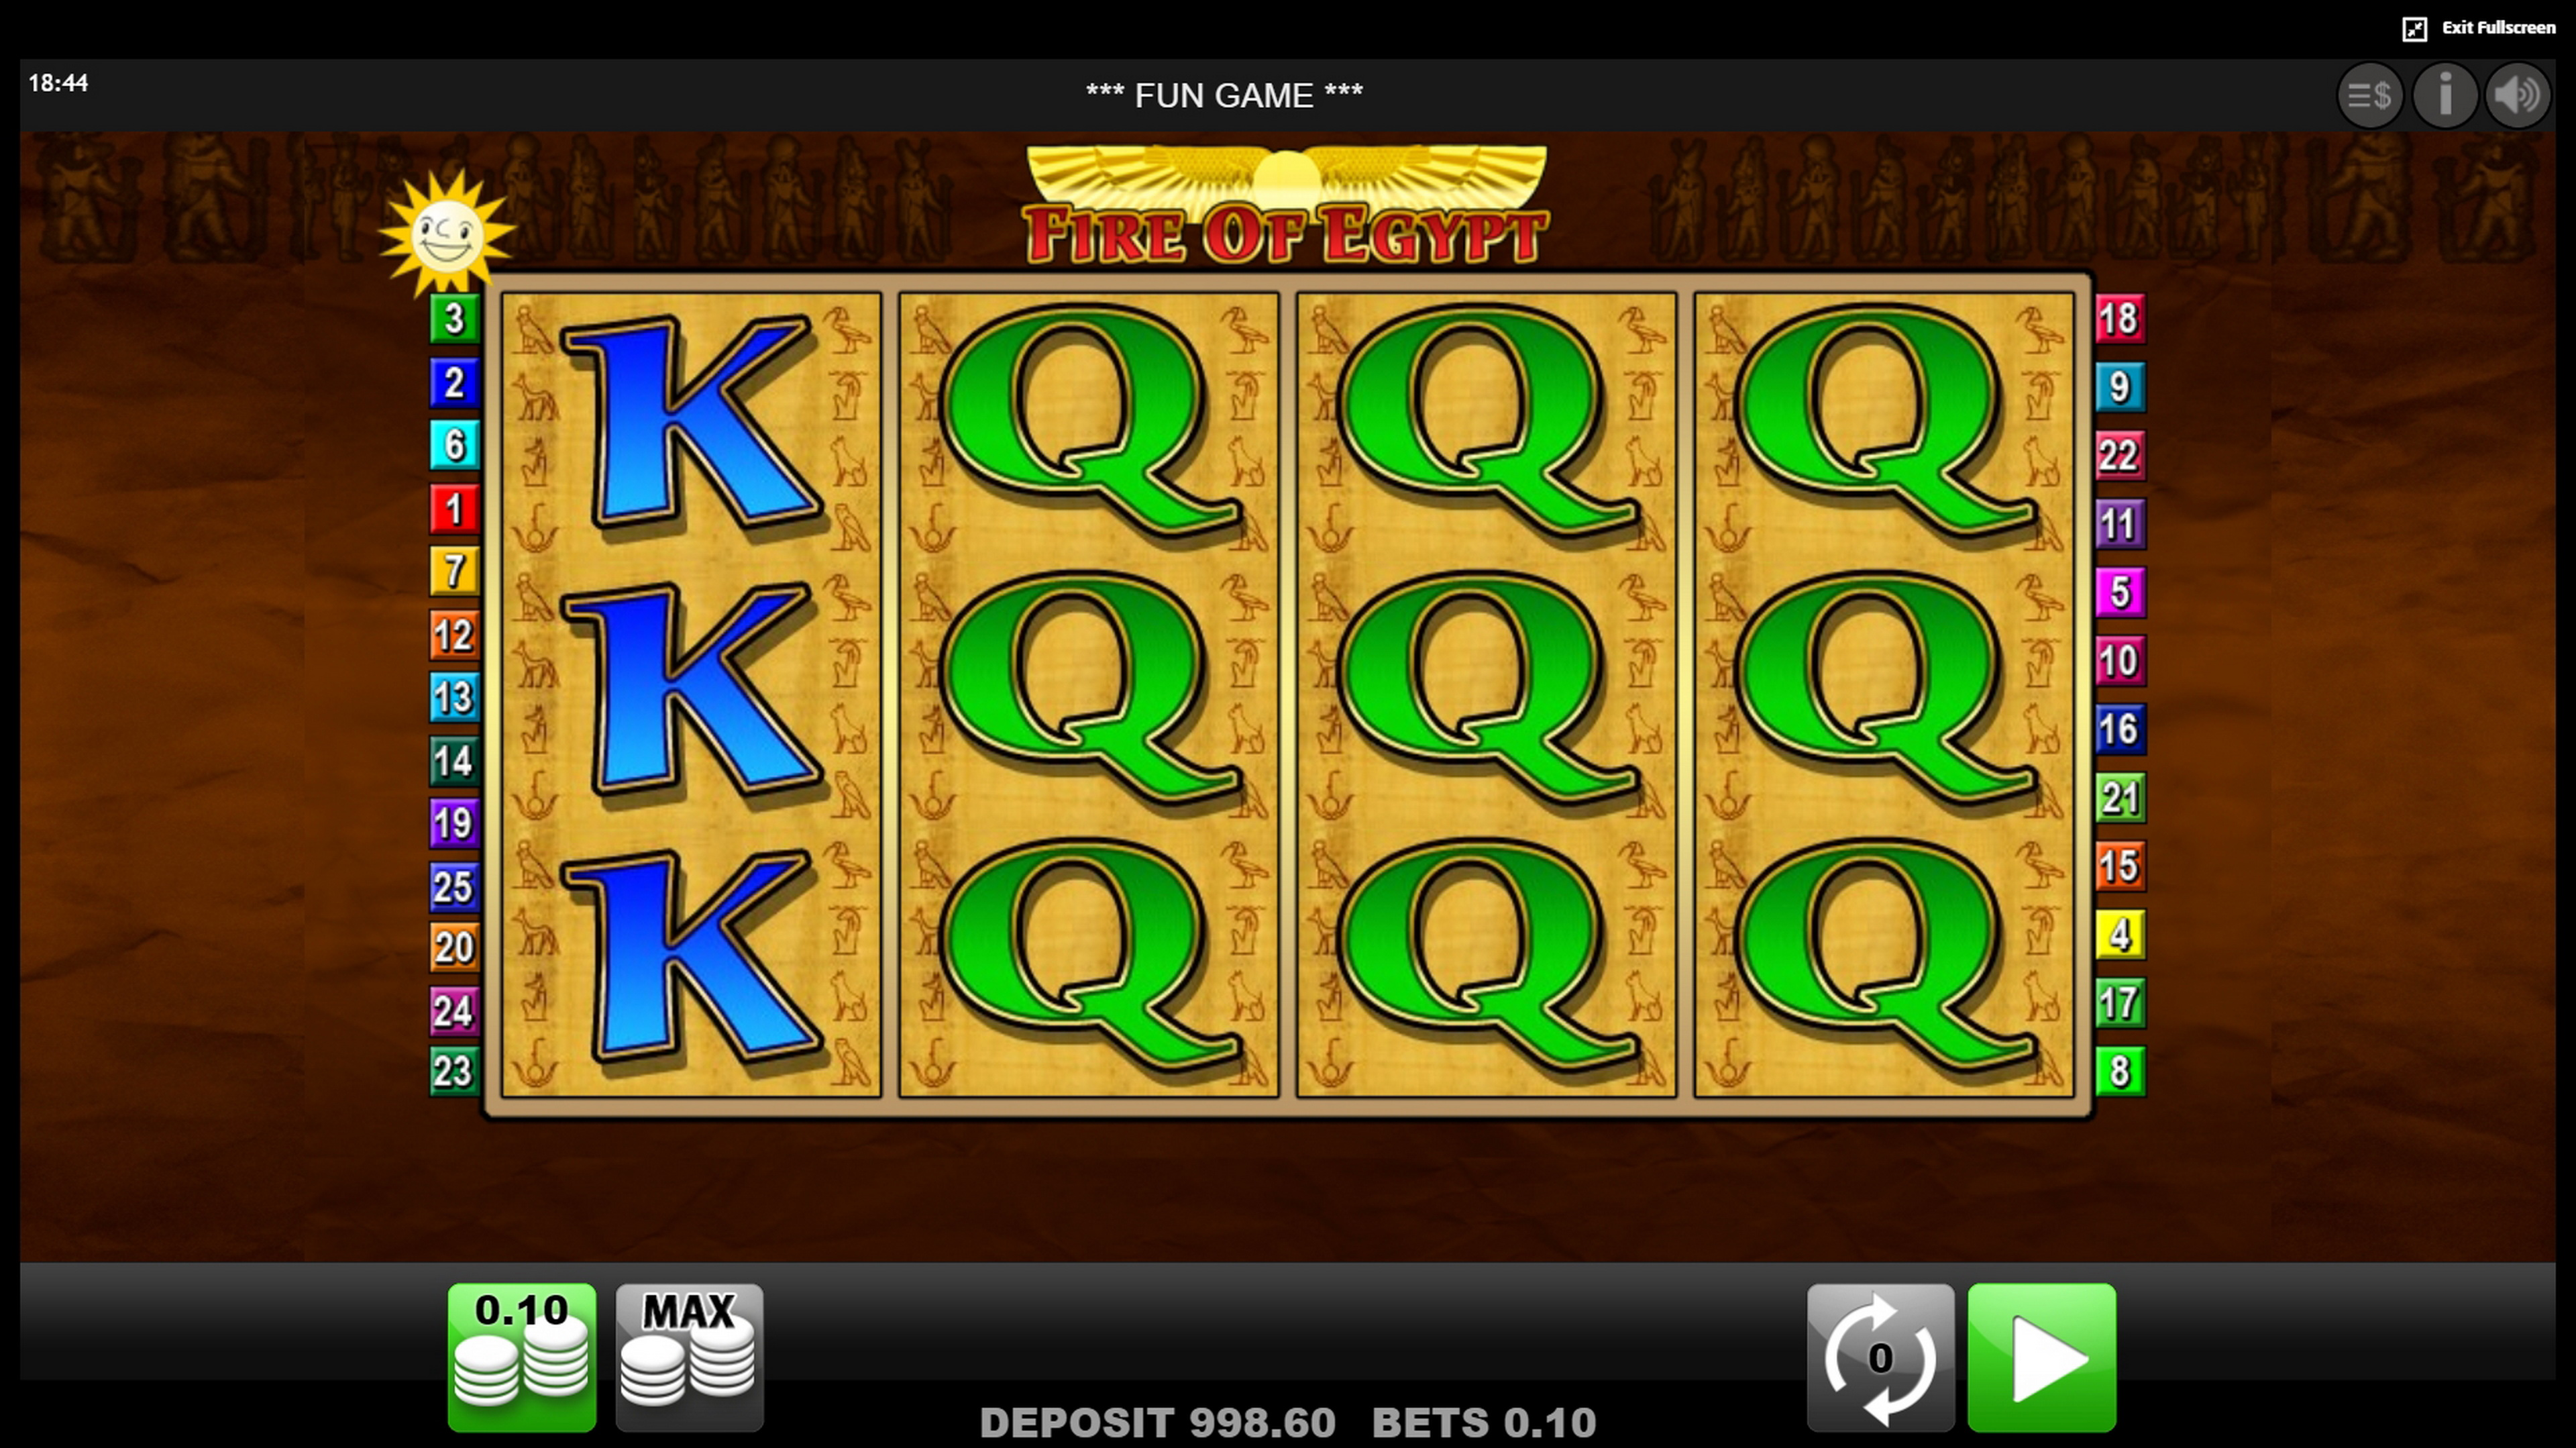 Reels in Fire of Egypt Slot Game by edict